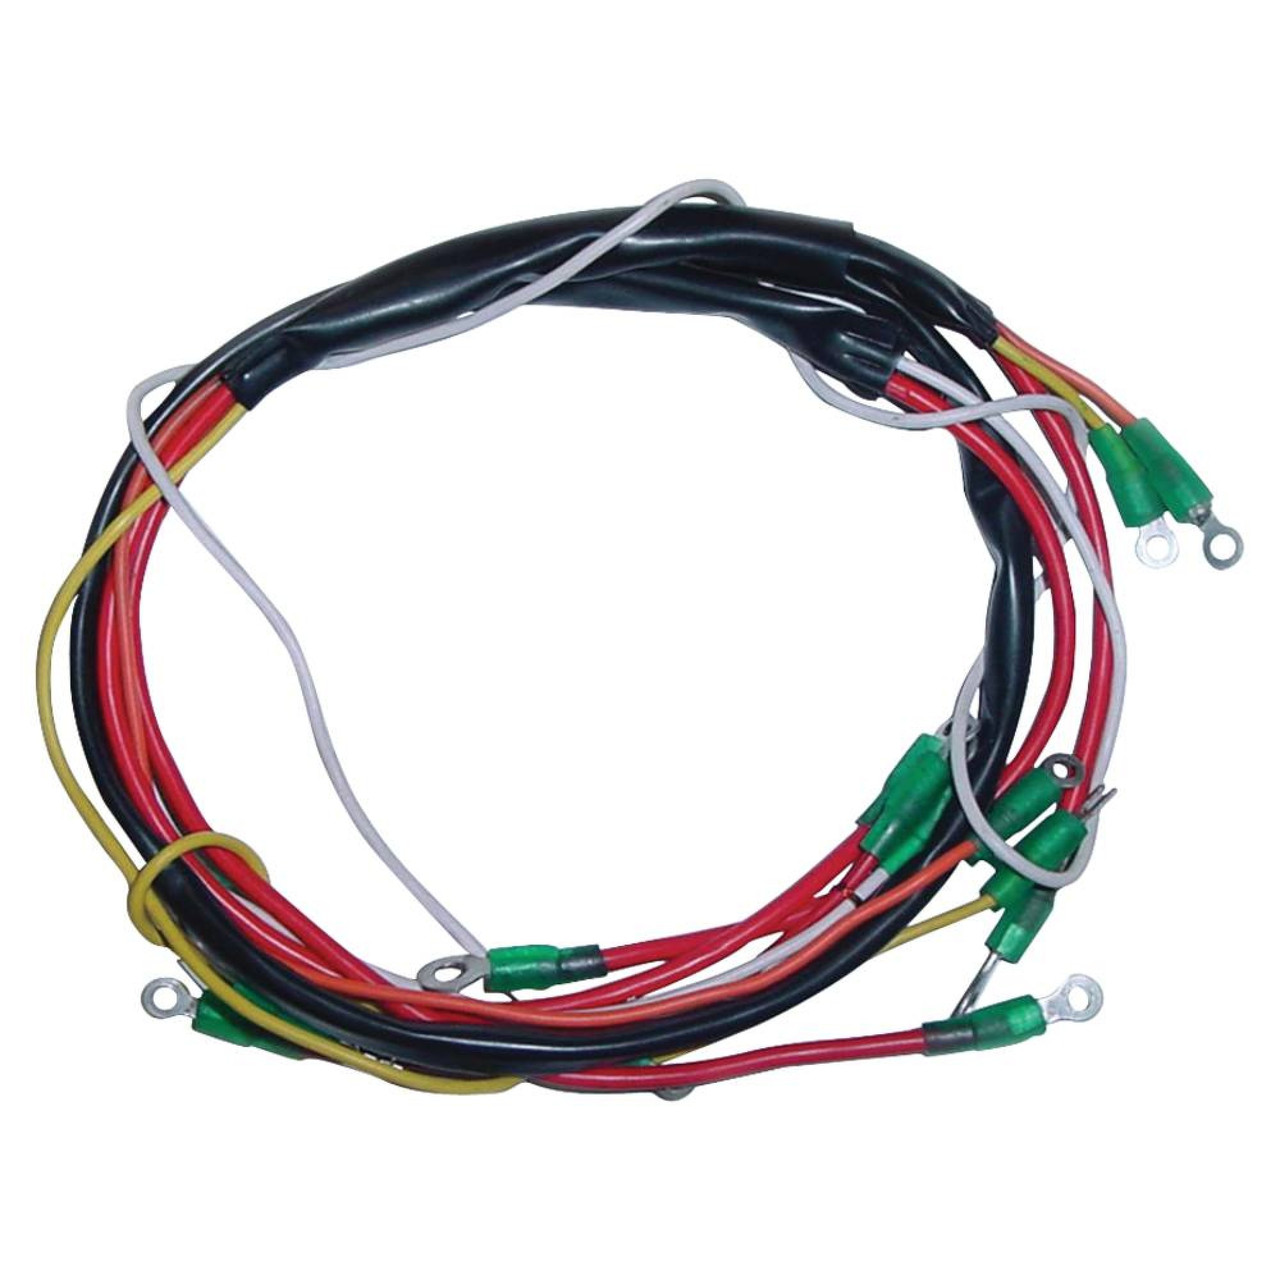 ford wiring harnesses new alternator wiring harness for ford new holland tractor 600 ford wiring harness repair new alternator wiring harness for ford